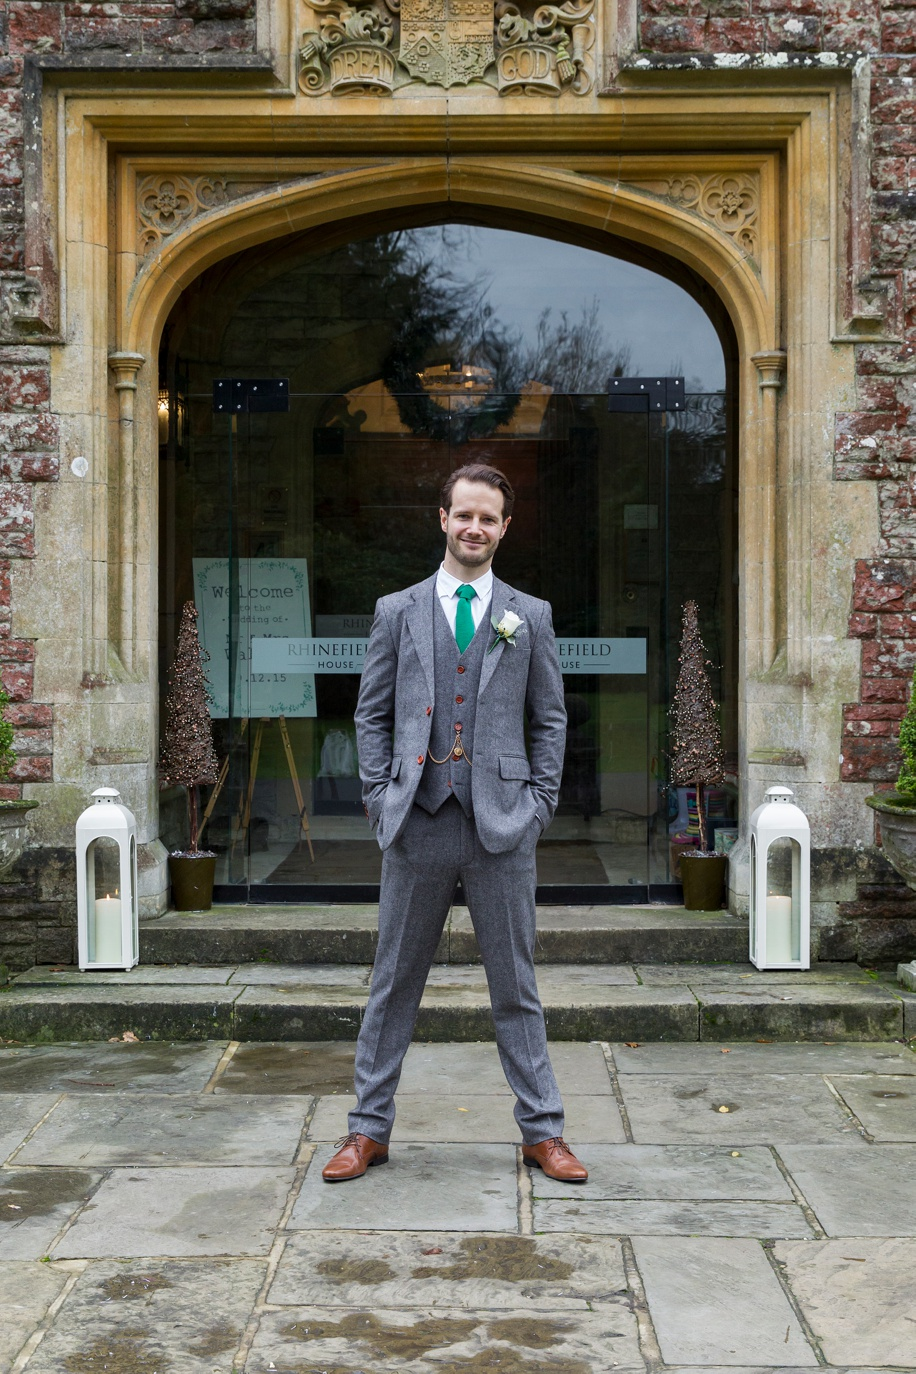 Rhinefield House wedding photography - Groom portrait